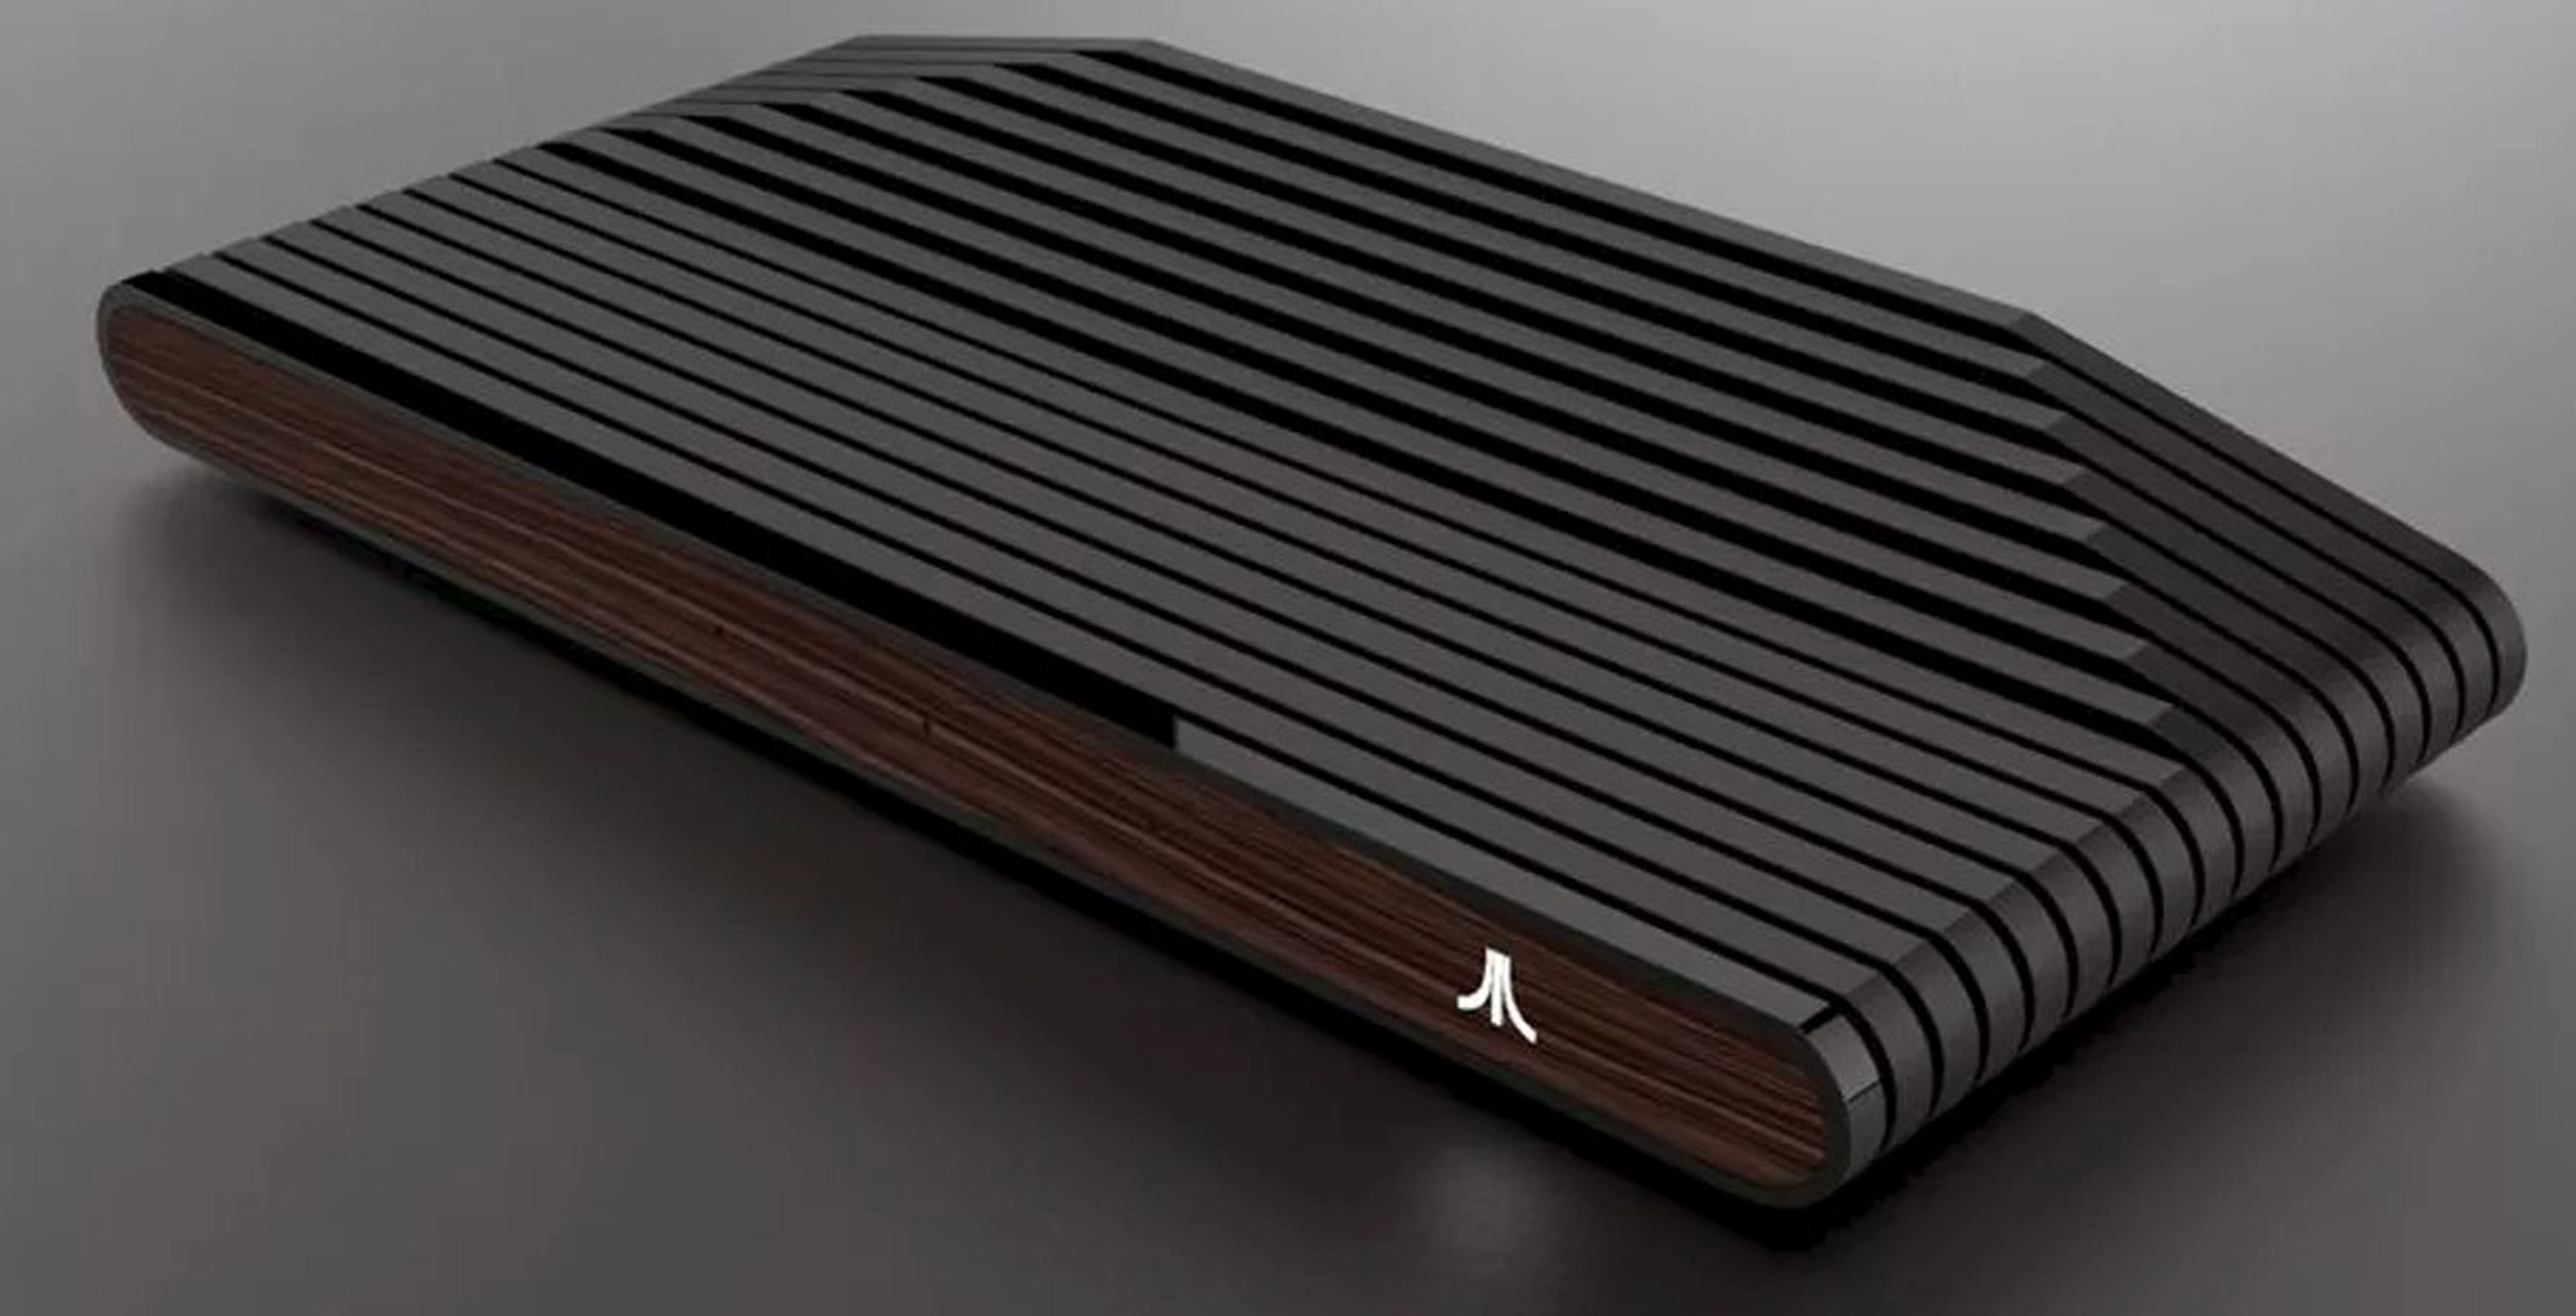 Render of Ataribox